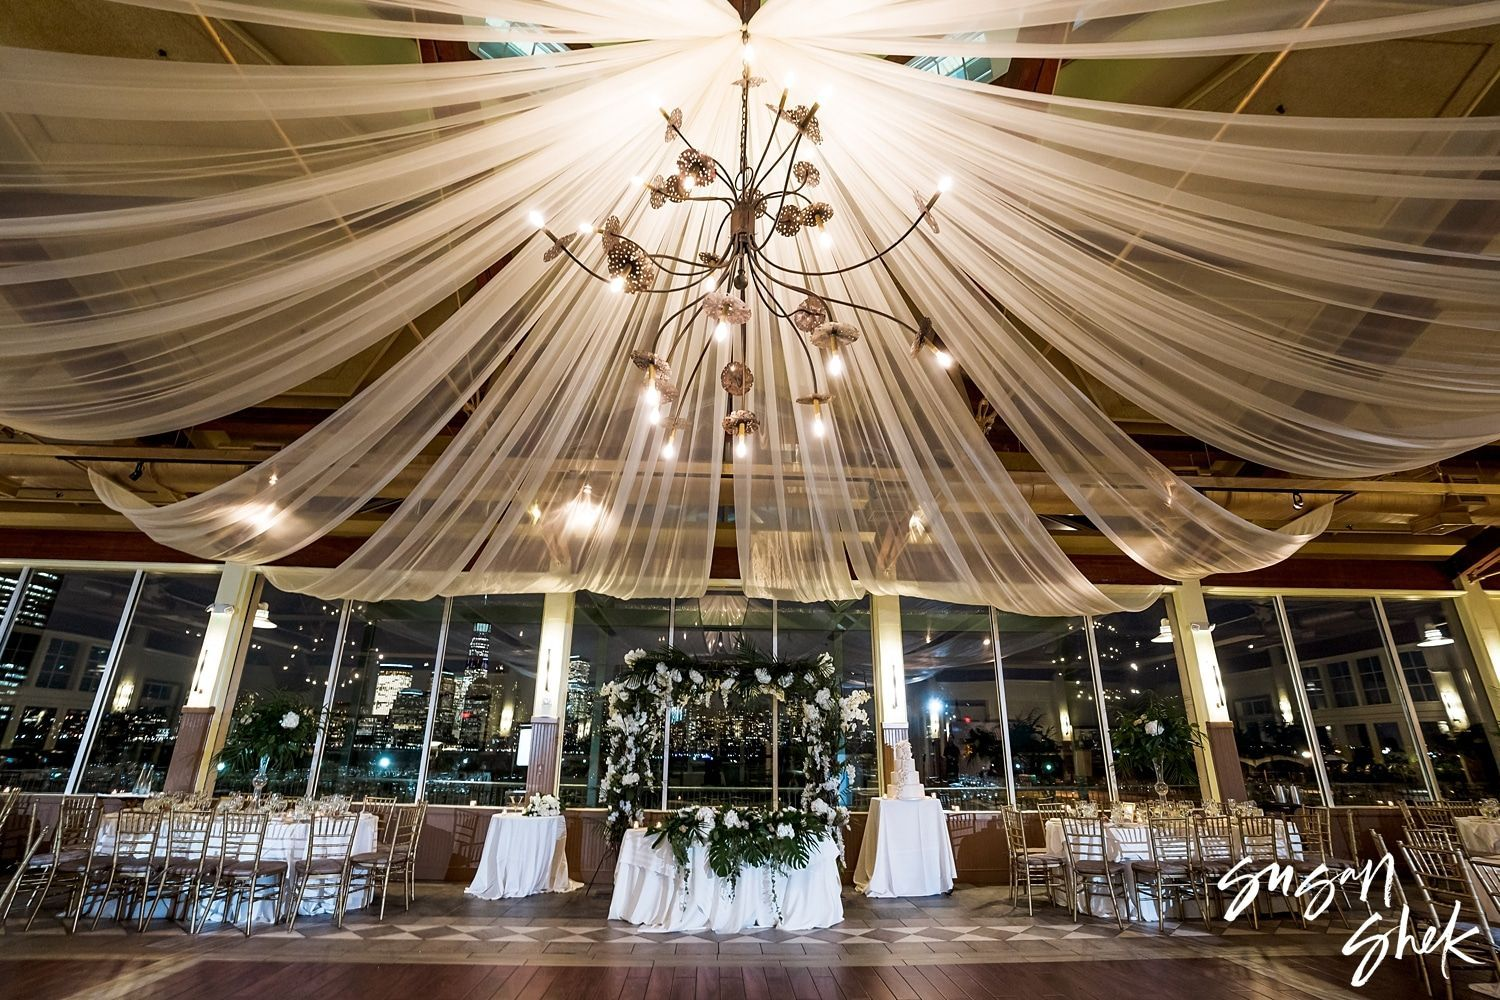 Liberty House Wedding In Jersey City Nj By Susan Shek Photography In 2020 Liberty House Wedding Restaurant Wedding Venues